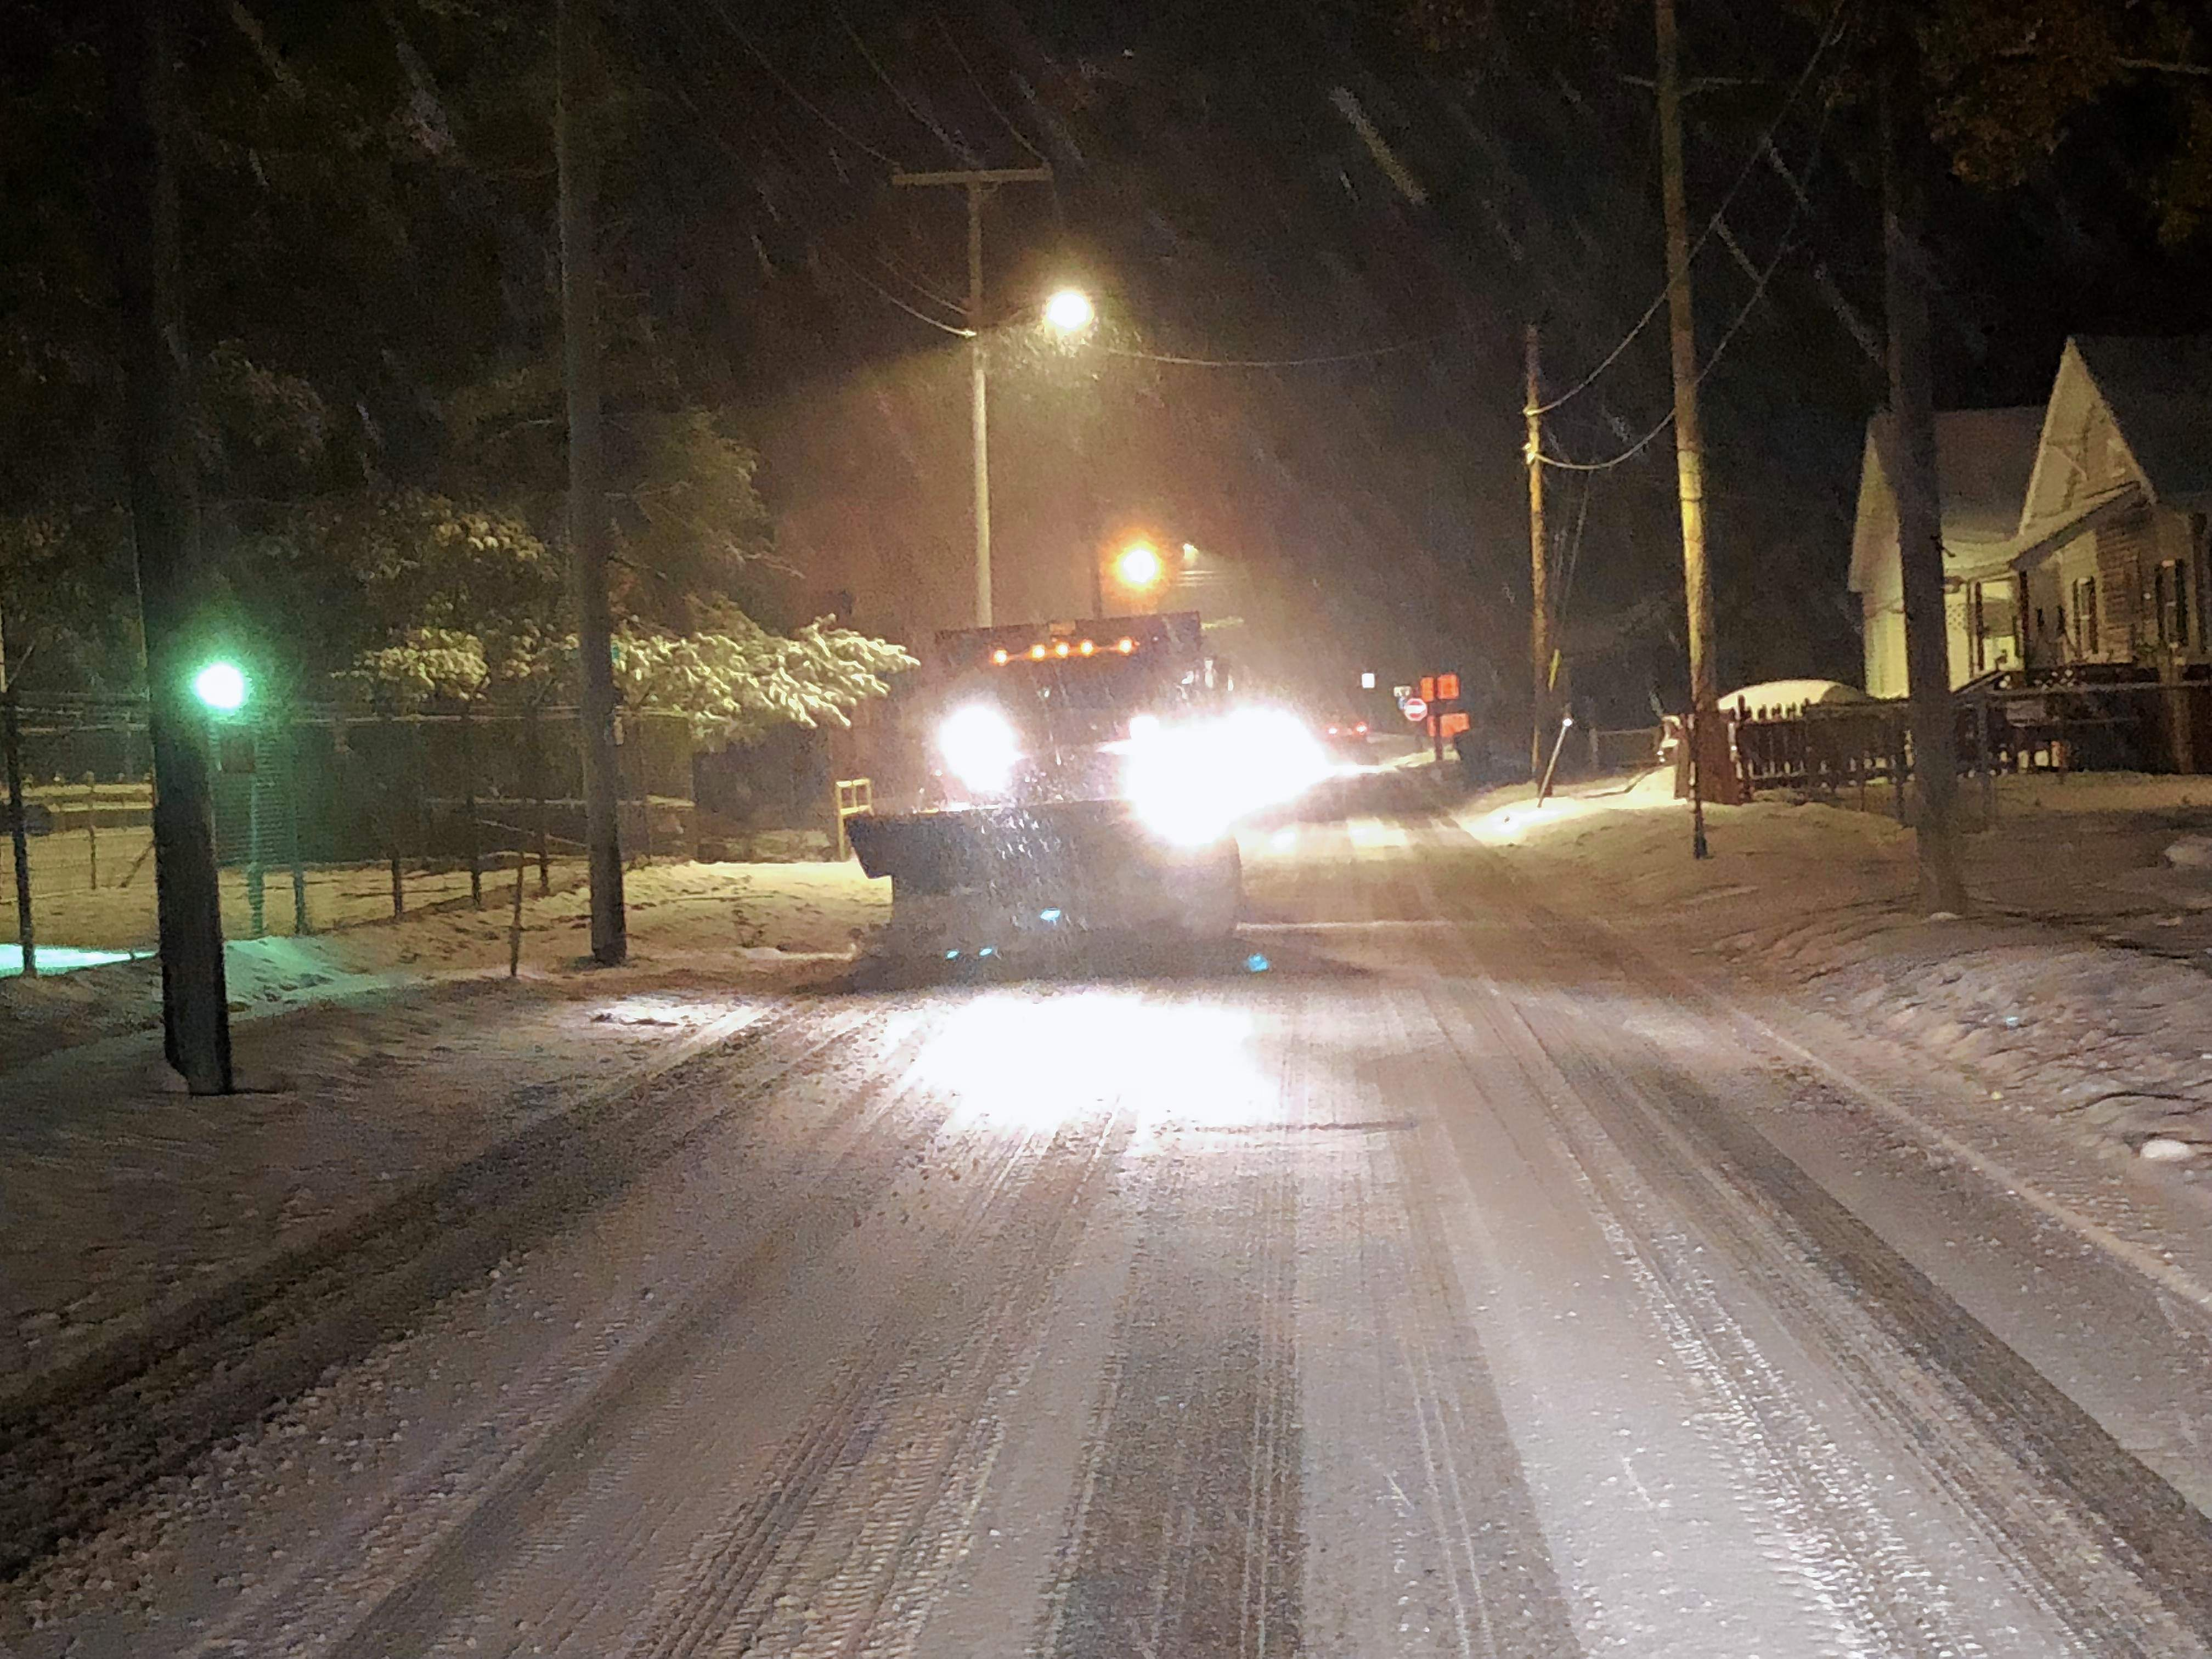 As the earliest measurable snowfall since 1951 blanketed southern Illinois Wednesday evening, Johnston City Street Department workers were out in force clearing roads. Crews worked through the night to help ensure that the city's main thoroughfares would be as safe as possible for the morning commute.